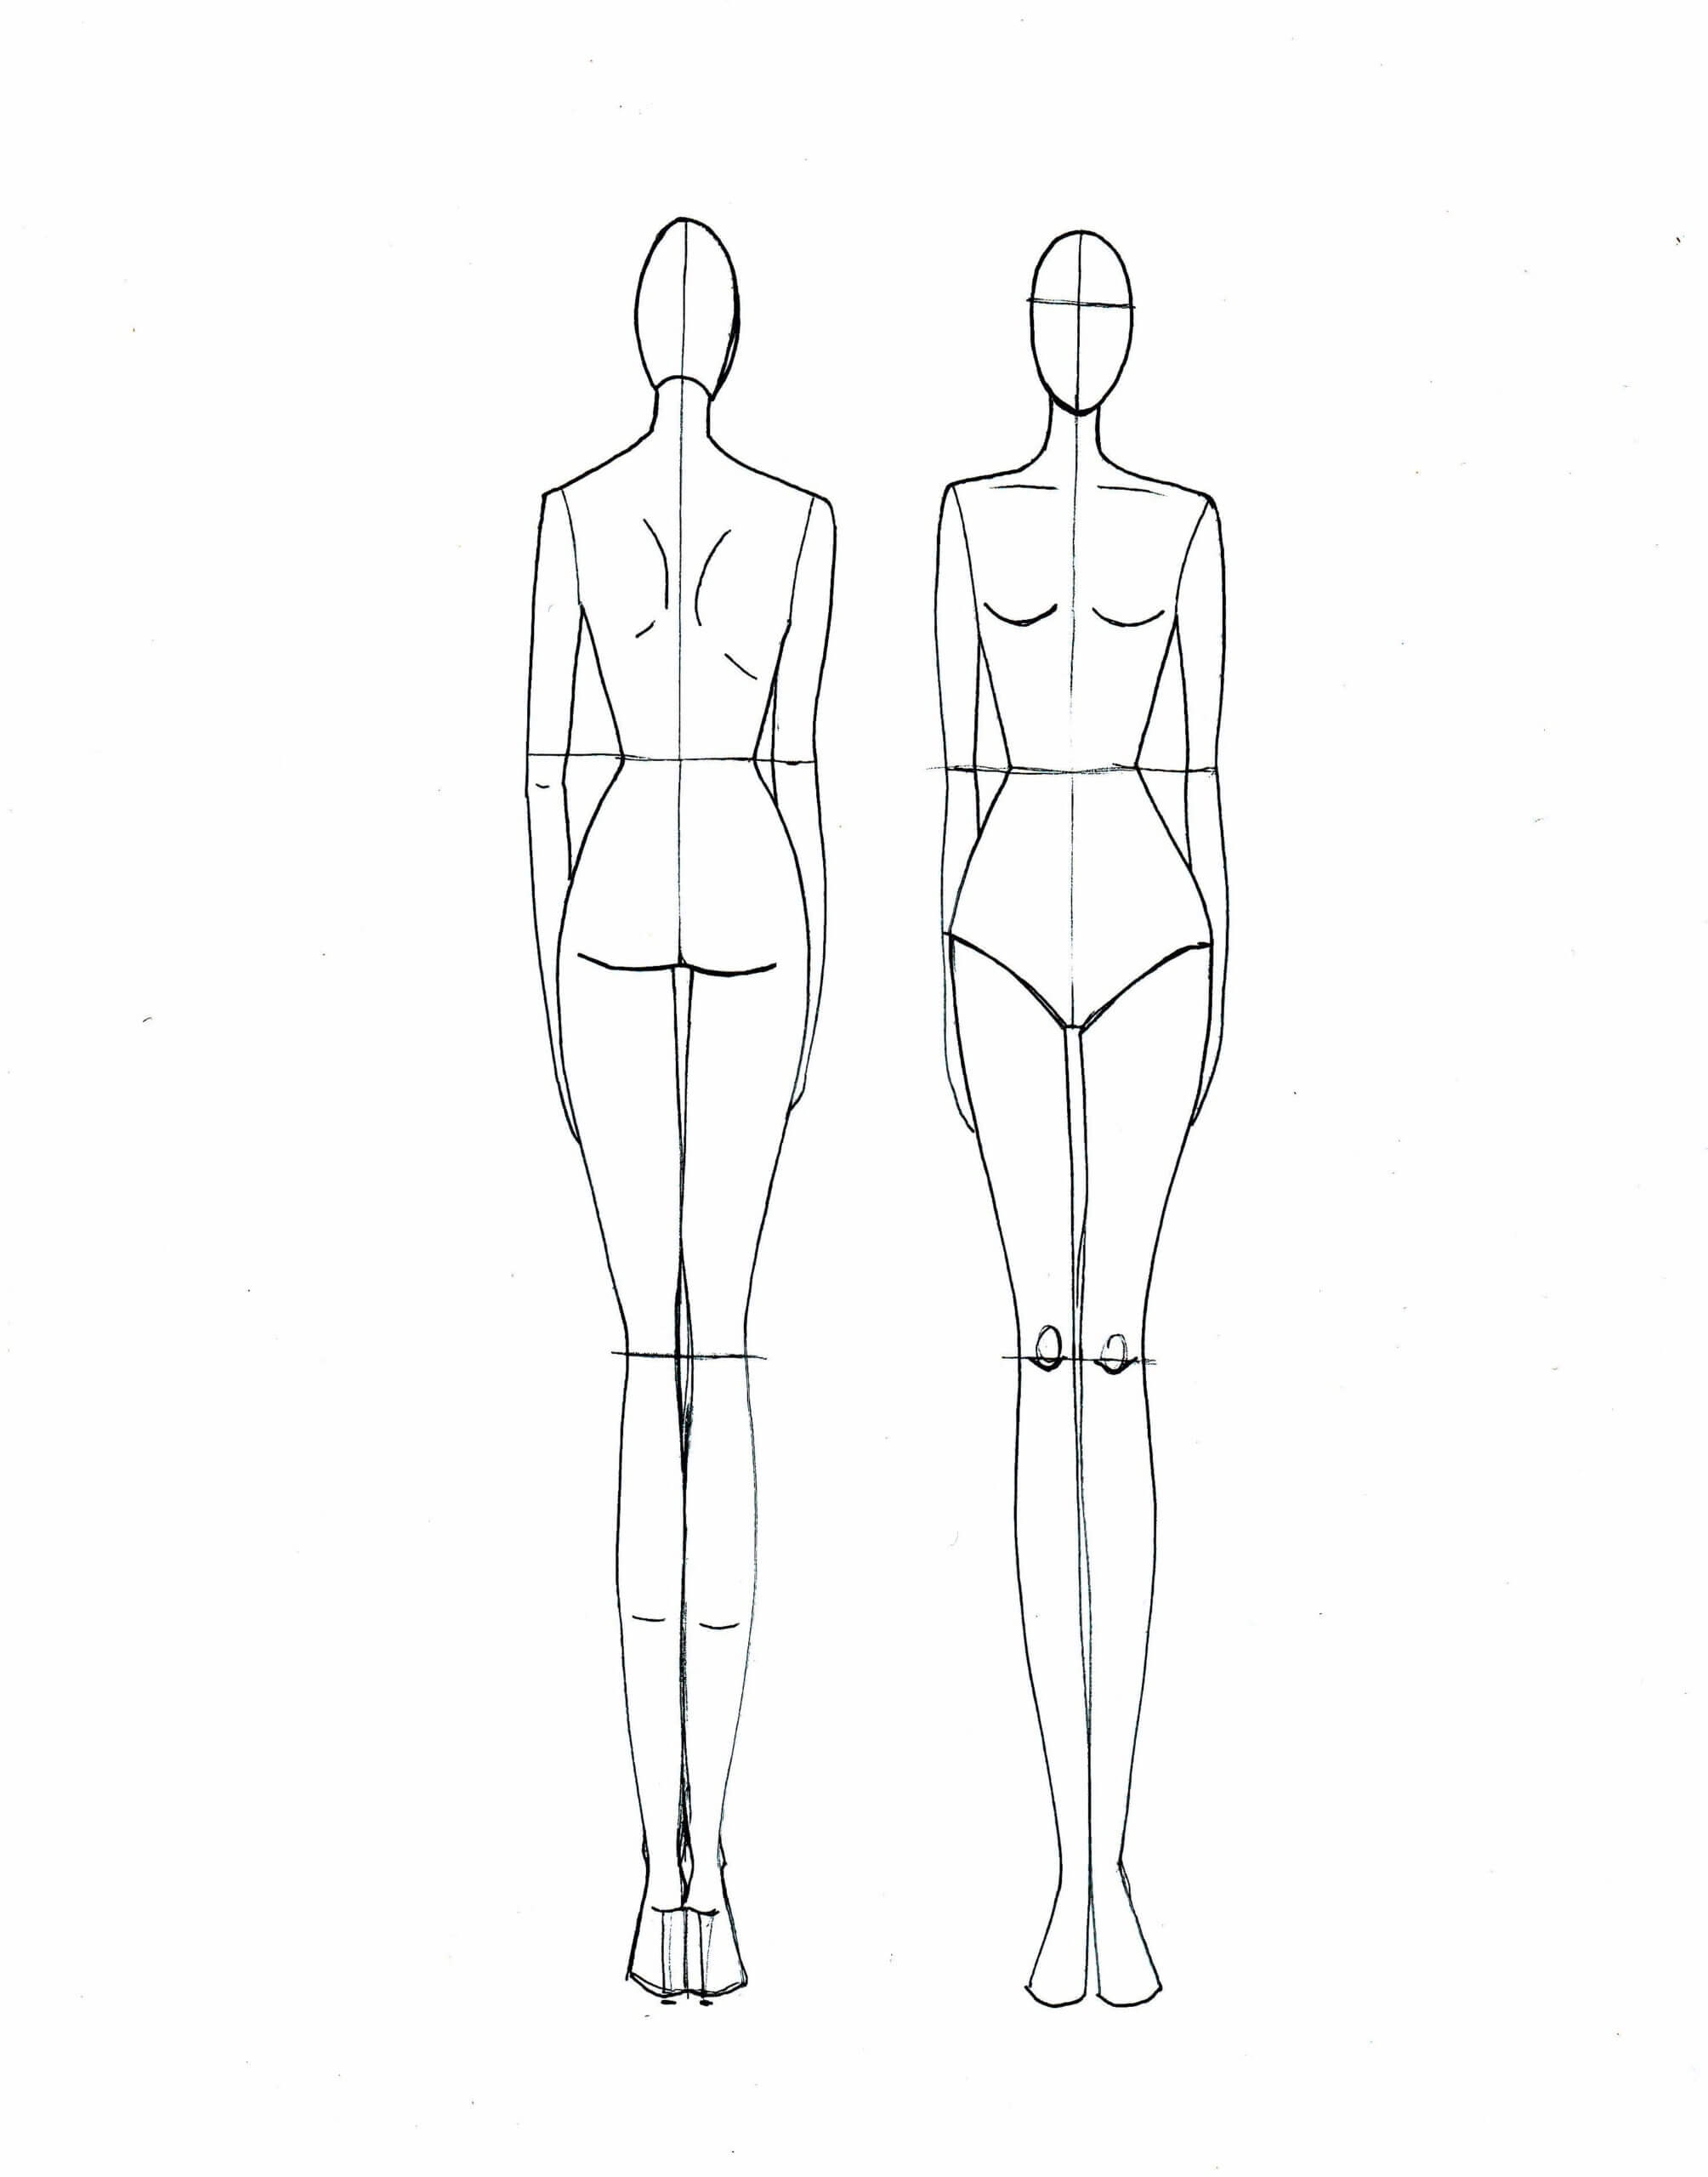 Clothing Model Sketch At Paintingvalley | Explore Throughout Blank Model Sketch Template